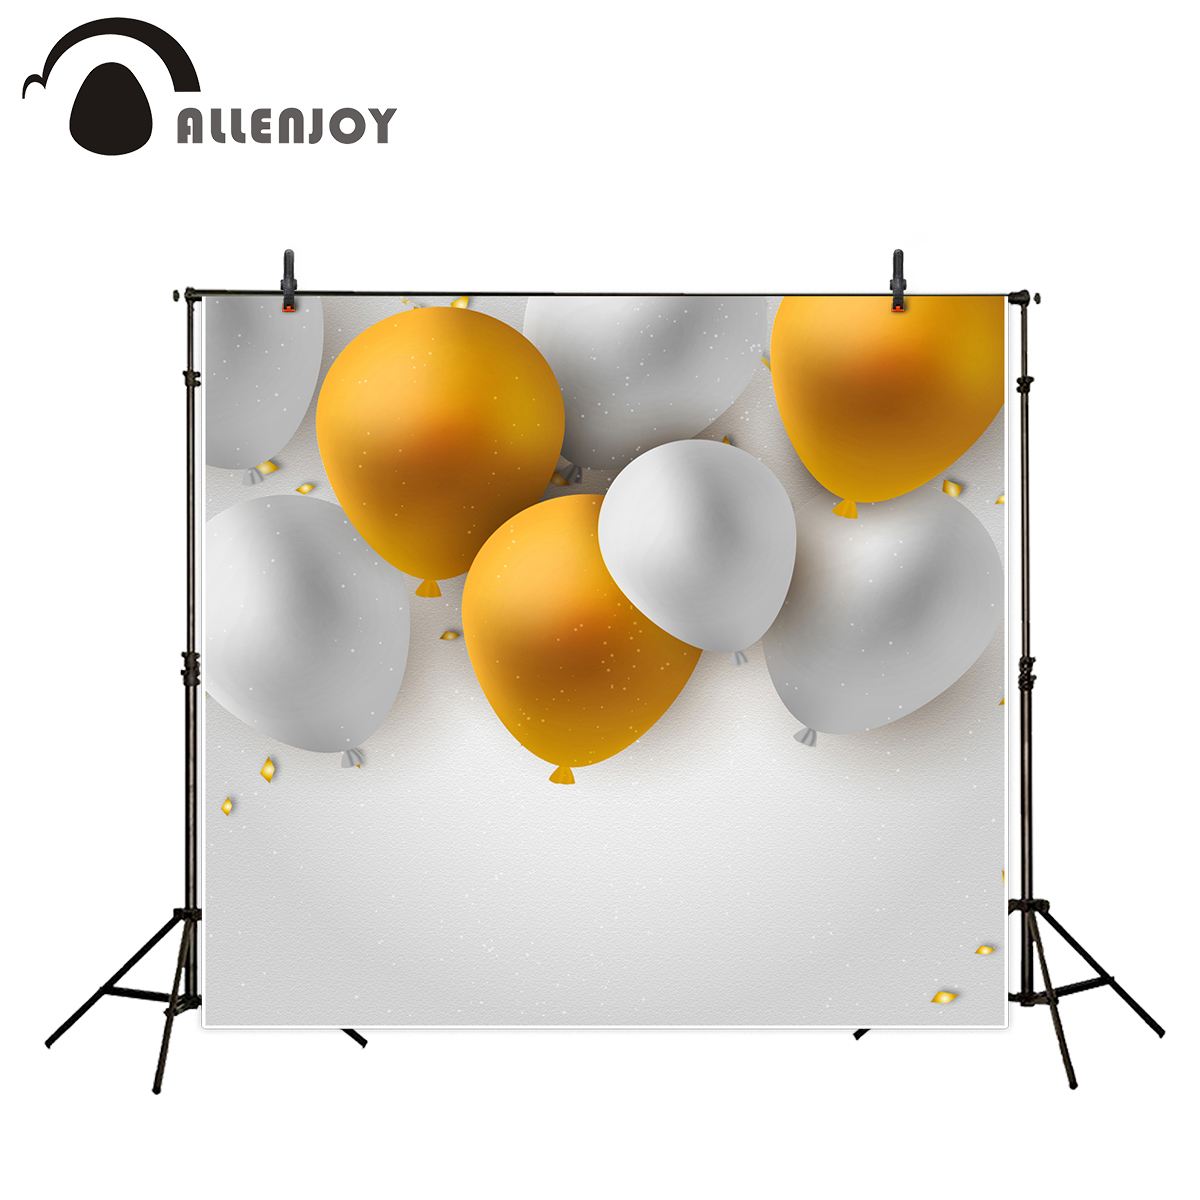 Allenjoy photography background glitter balloon party celebrate fantasy props for newborn photobooth backdrop wireless sound system waiter pager to the hospital restaurant wireless watch calling service call 433mhz